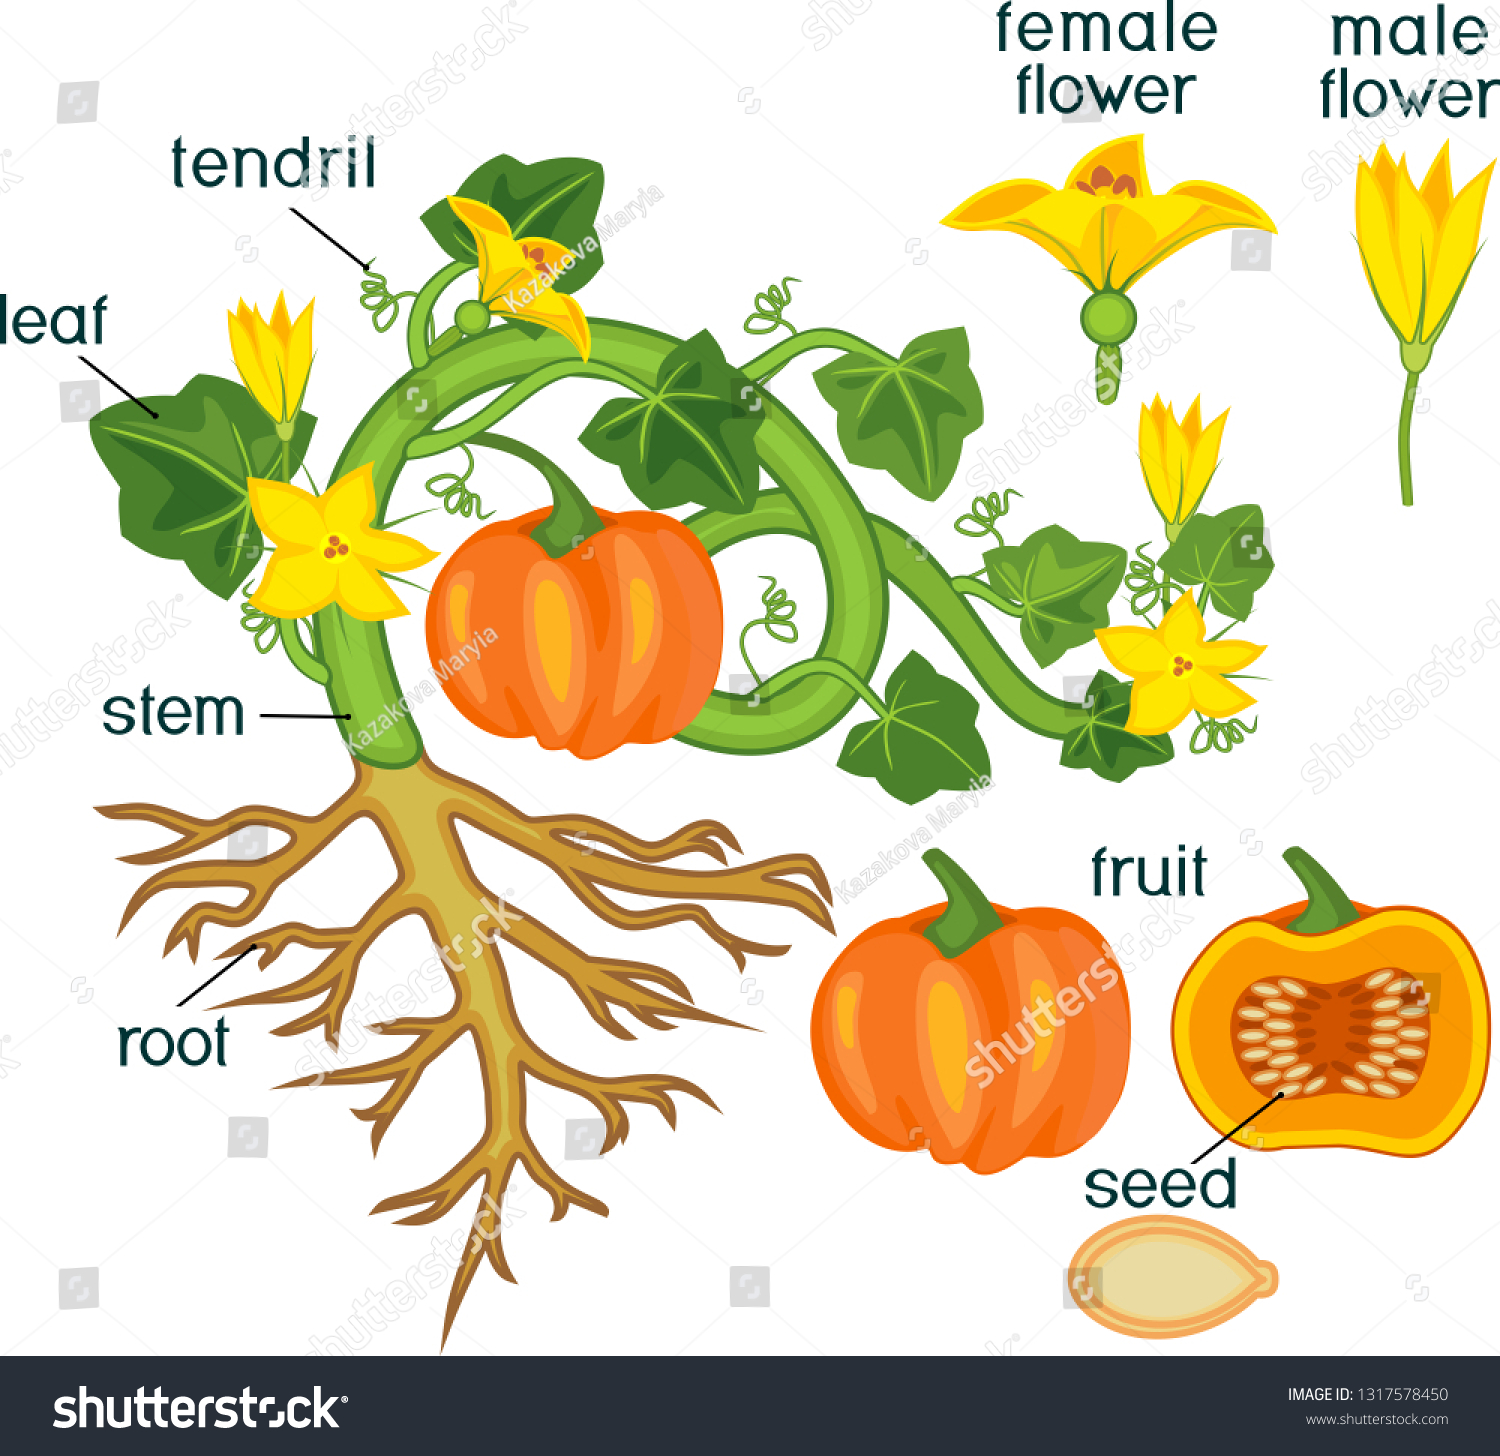 Parts Plant Morphology Pumpkin Plant Fruit Stock Vector Royalty Free 1317578450